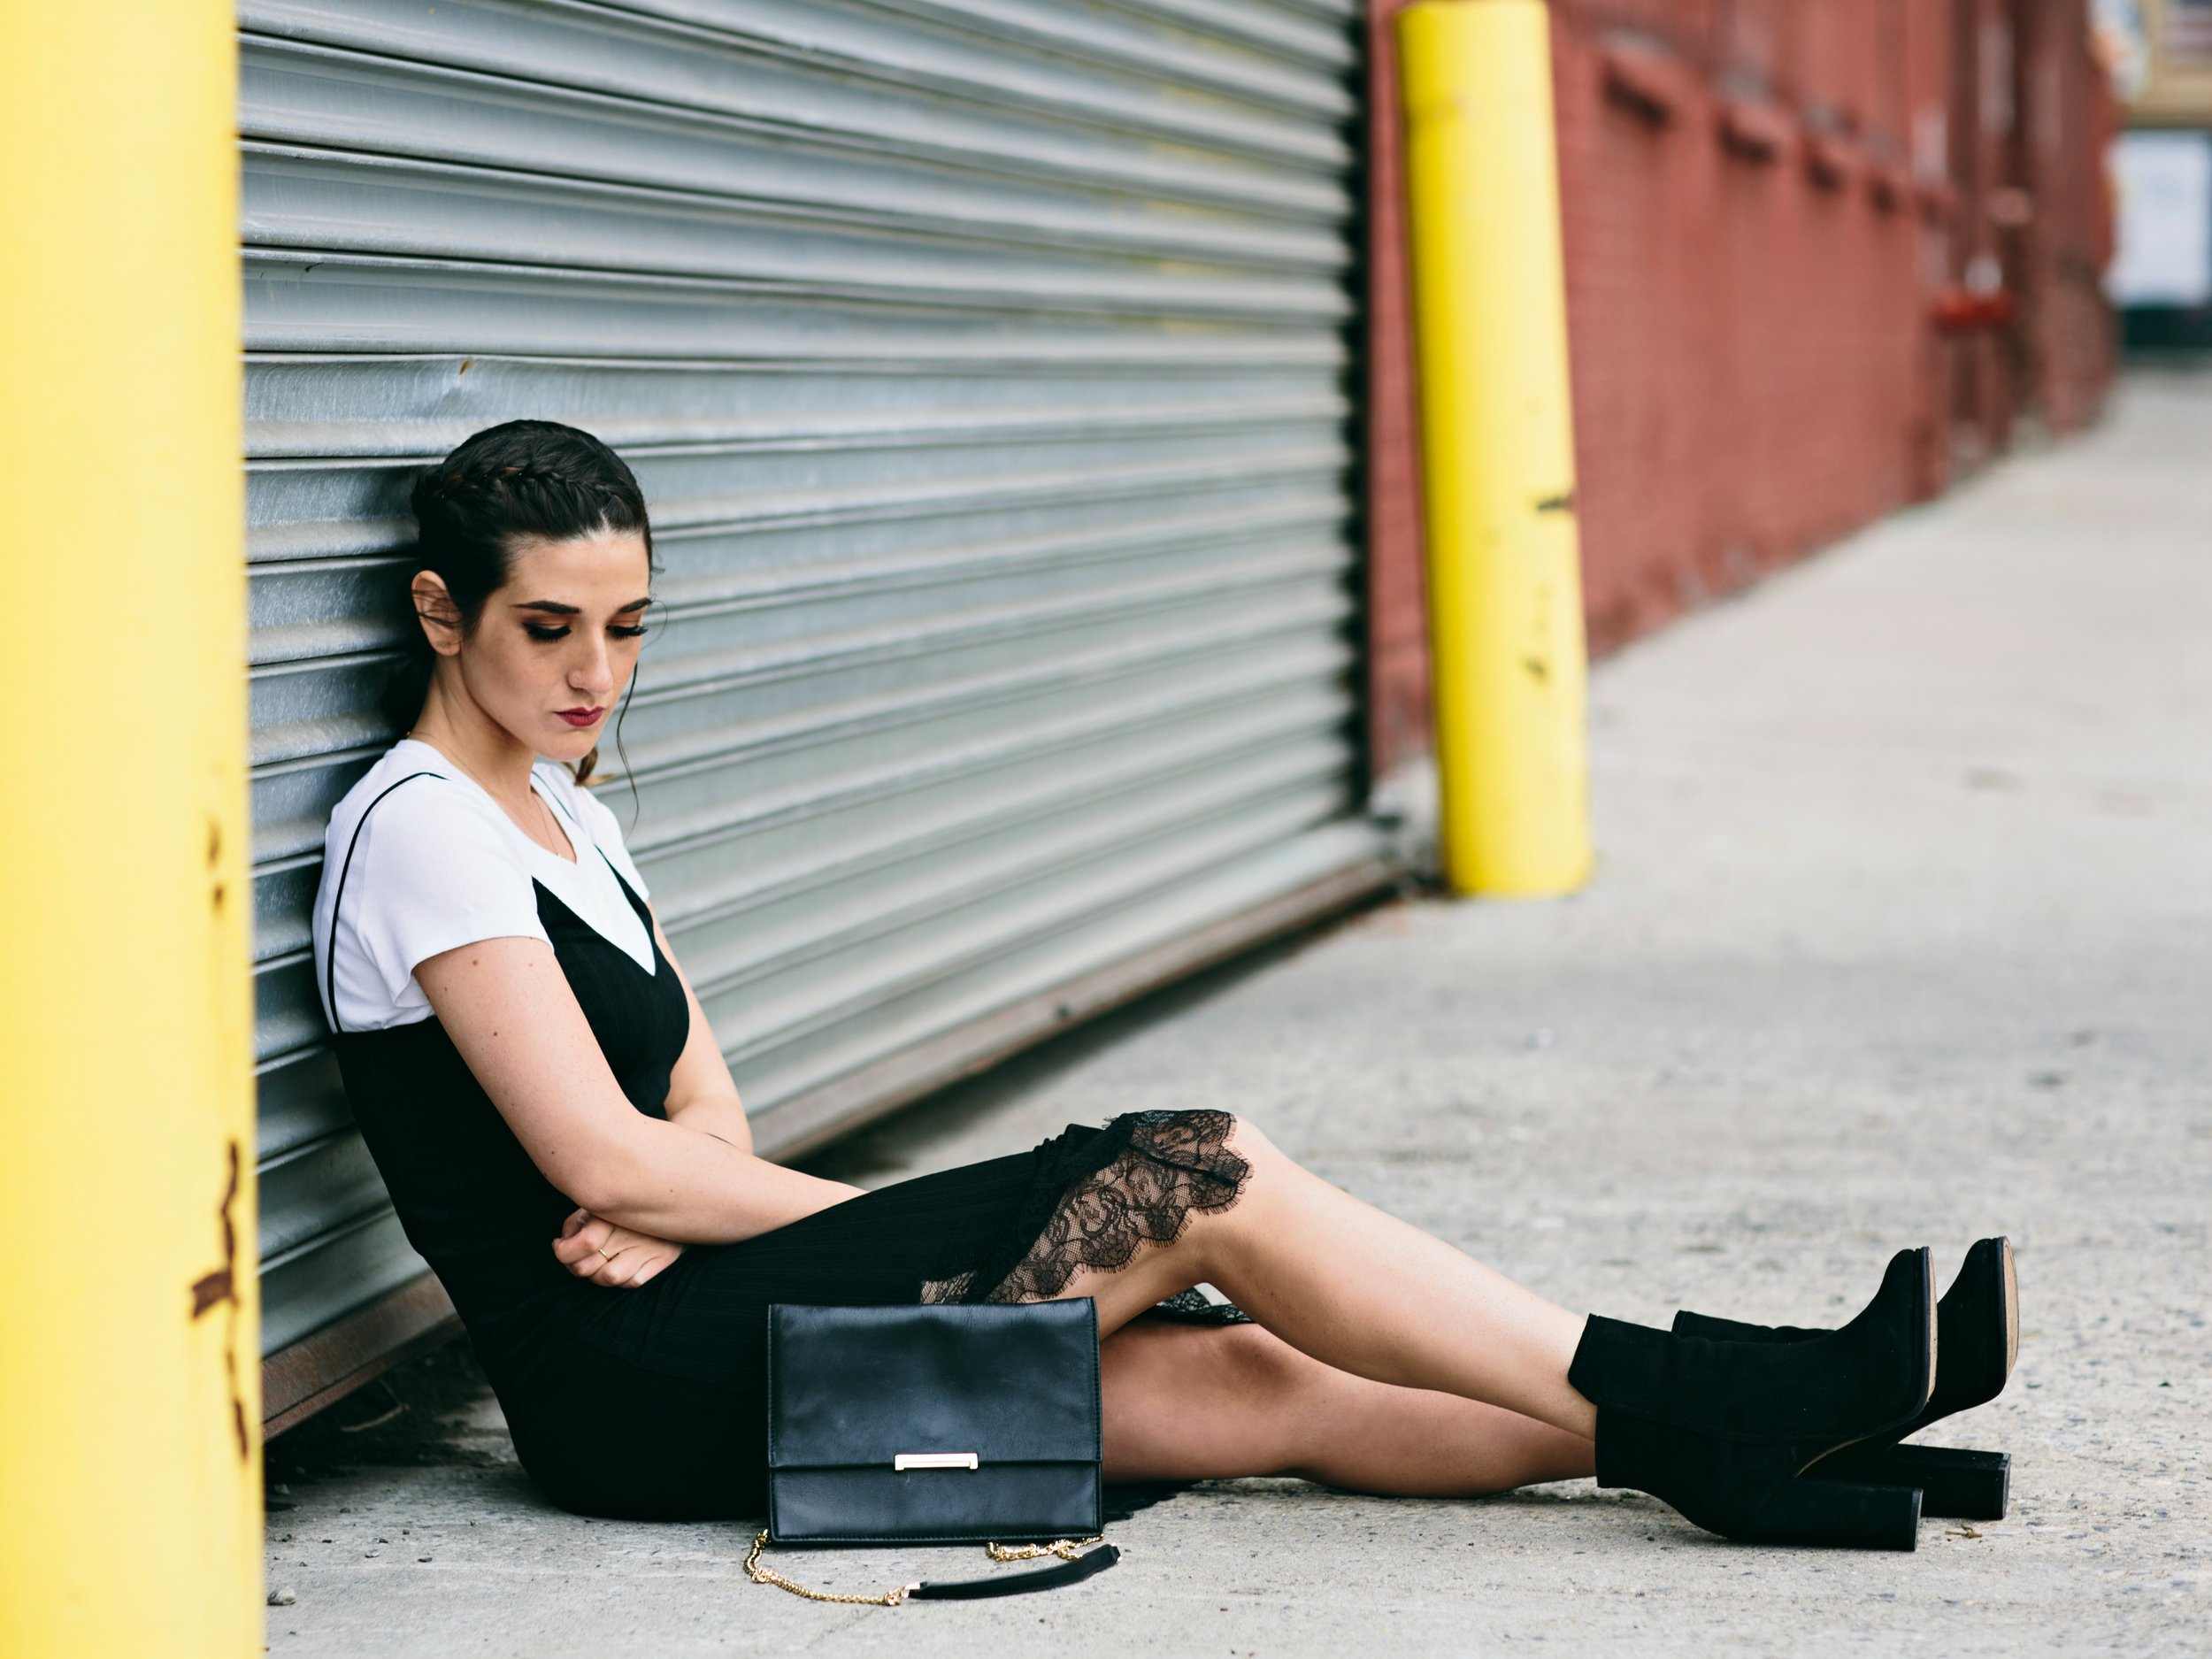 Black Lace Slip Dress Over White Tee Louboutins & Love Fashion Blog Esther Santer NYC Street Style Blogger Outfit OOTD Trendy Booties M4D3 Online Shopping Girl Women Fall Look Ivanka Trump Cocktail Bag  Wear Edgy Inspo Hair Ponytail Fashionista.jpg